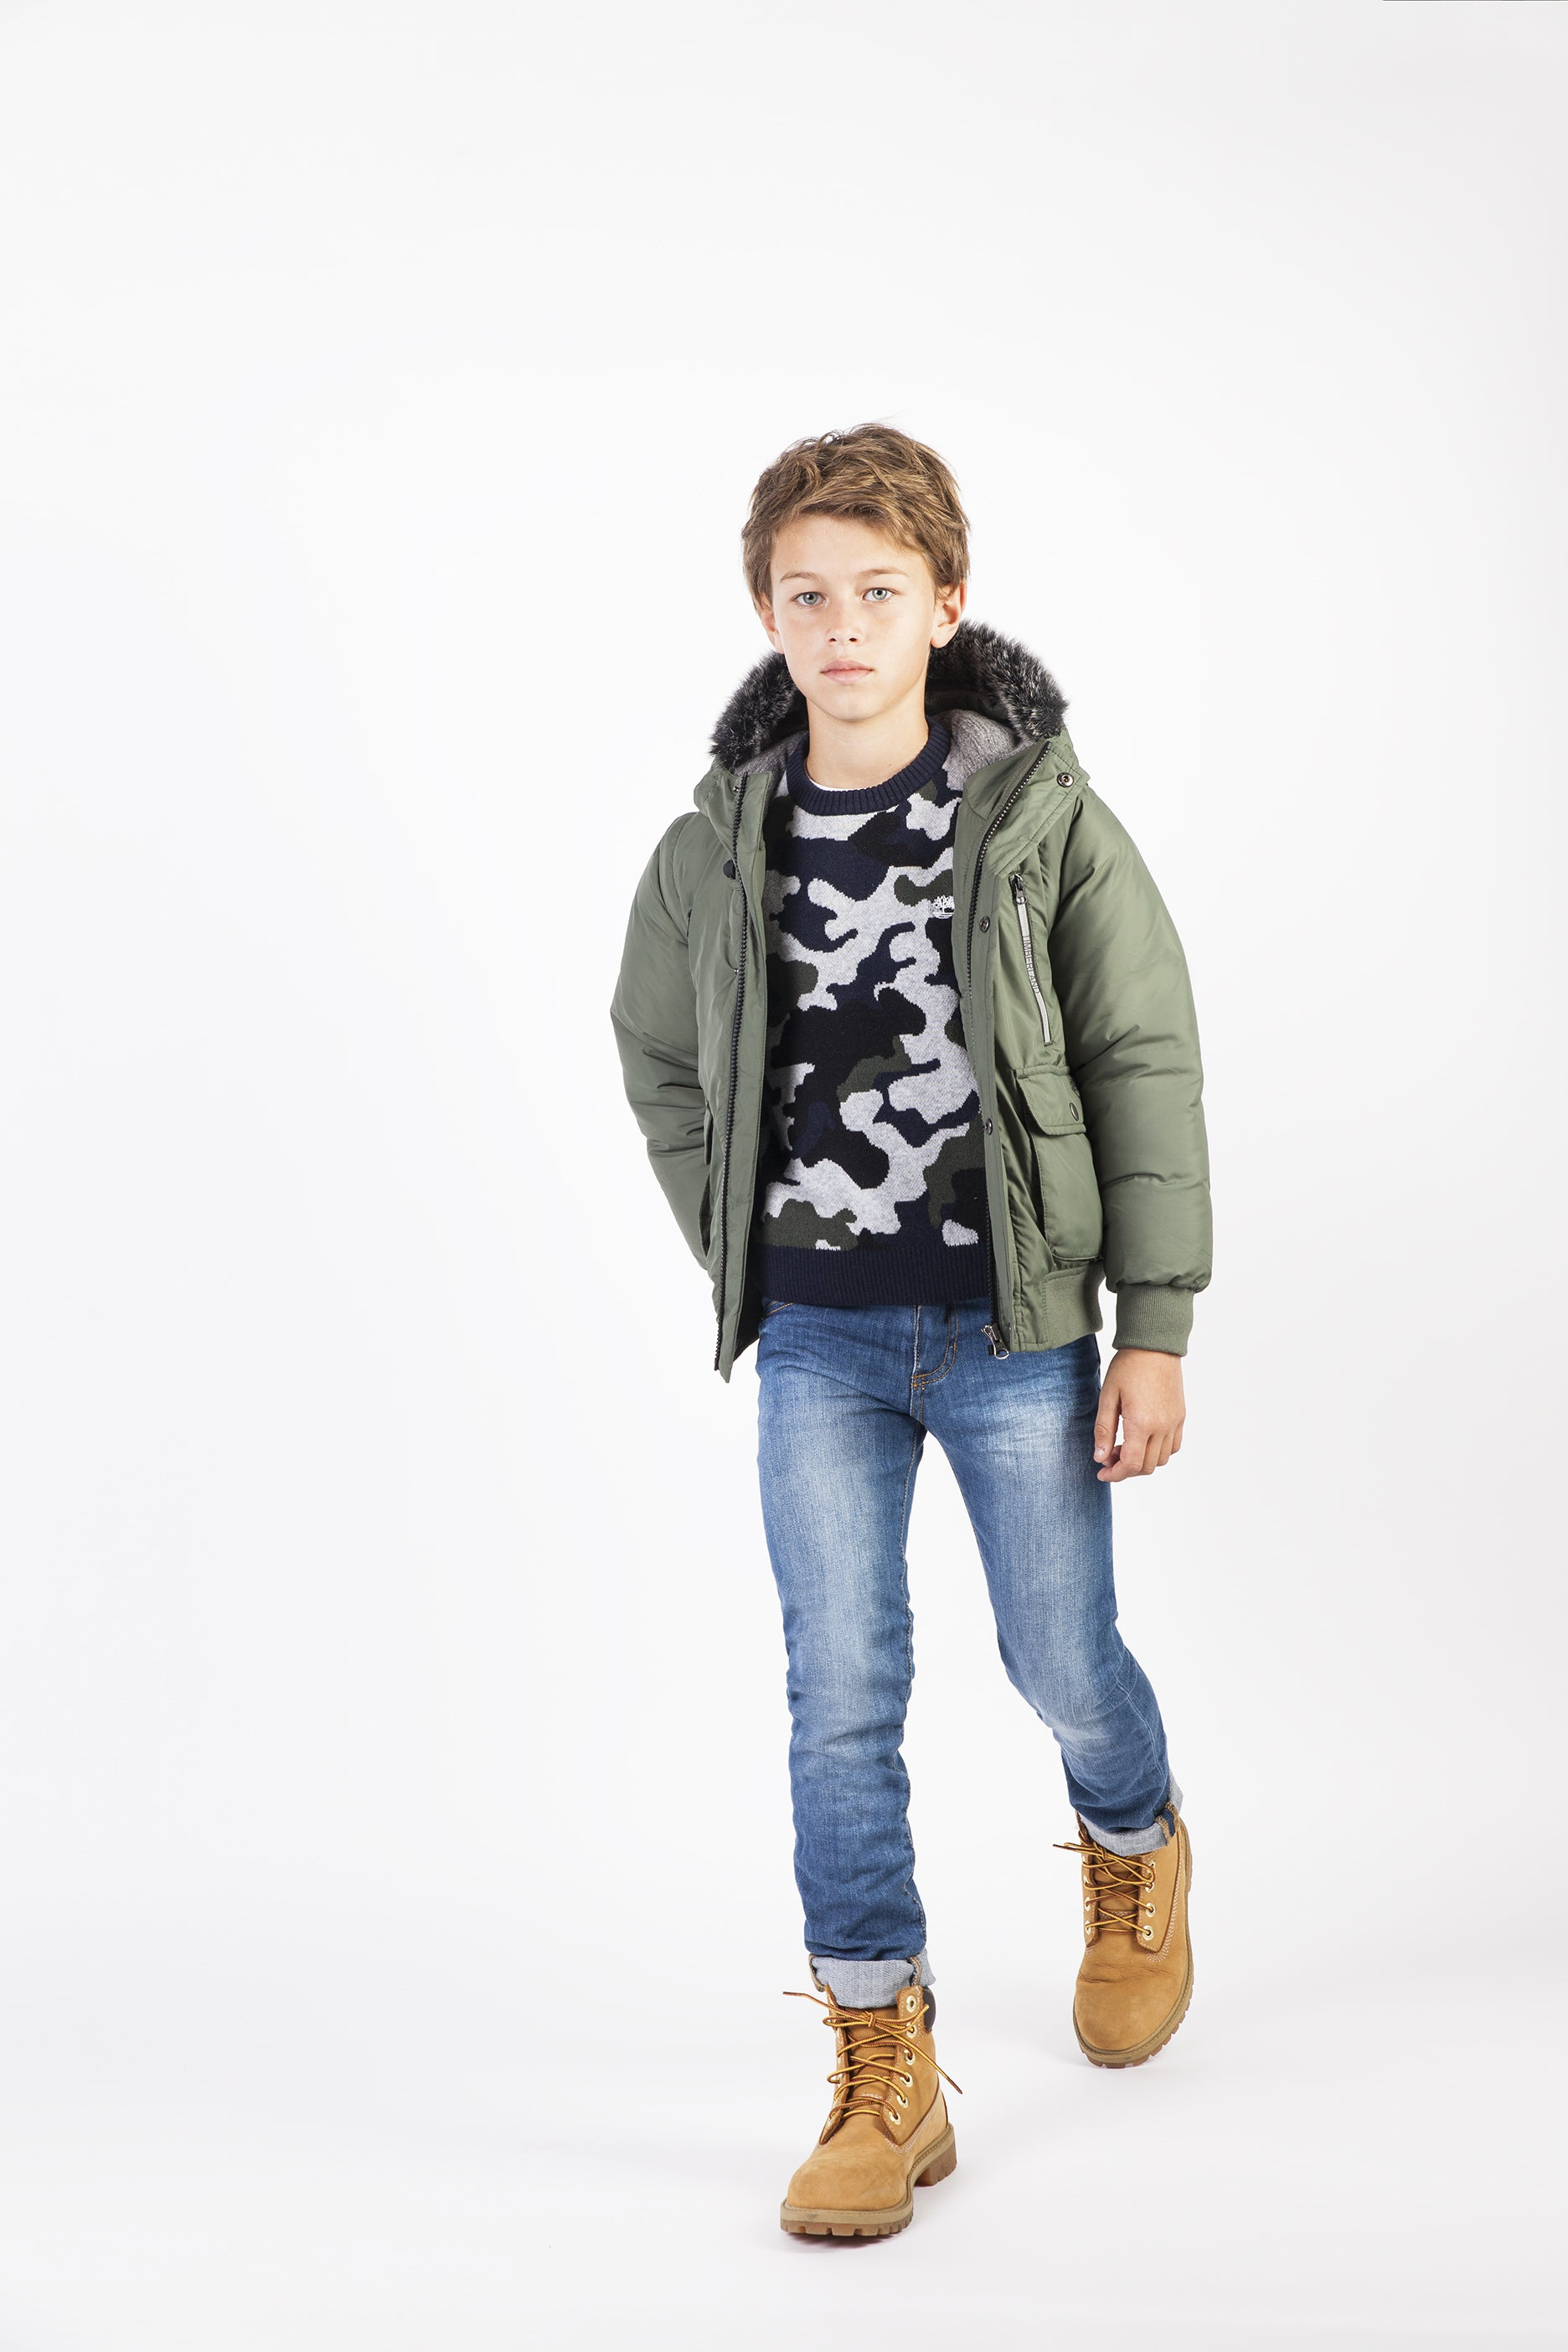 54c30a527 AW18 Timberland Boys Khaki Green Coat With Removable Sleeves 4-14 ...